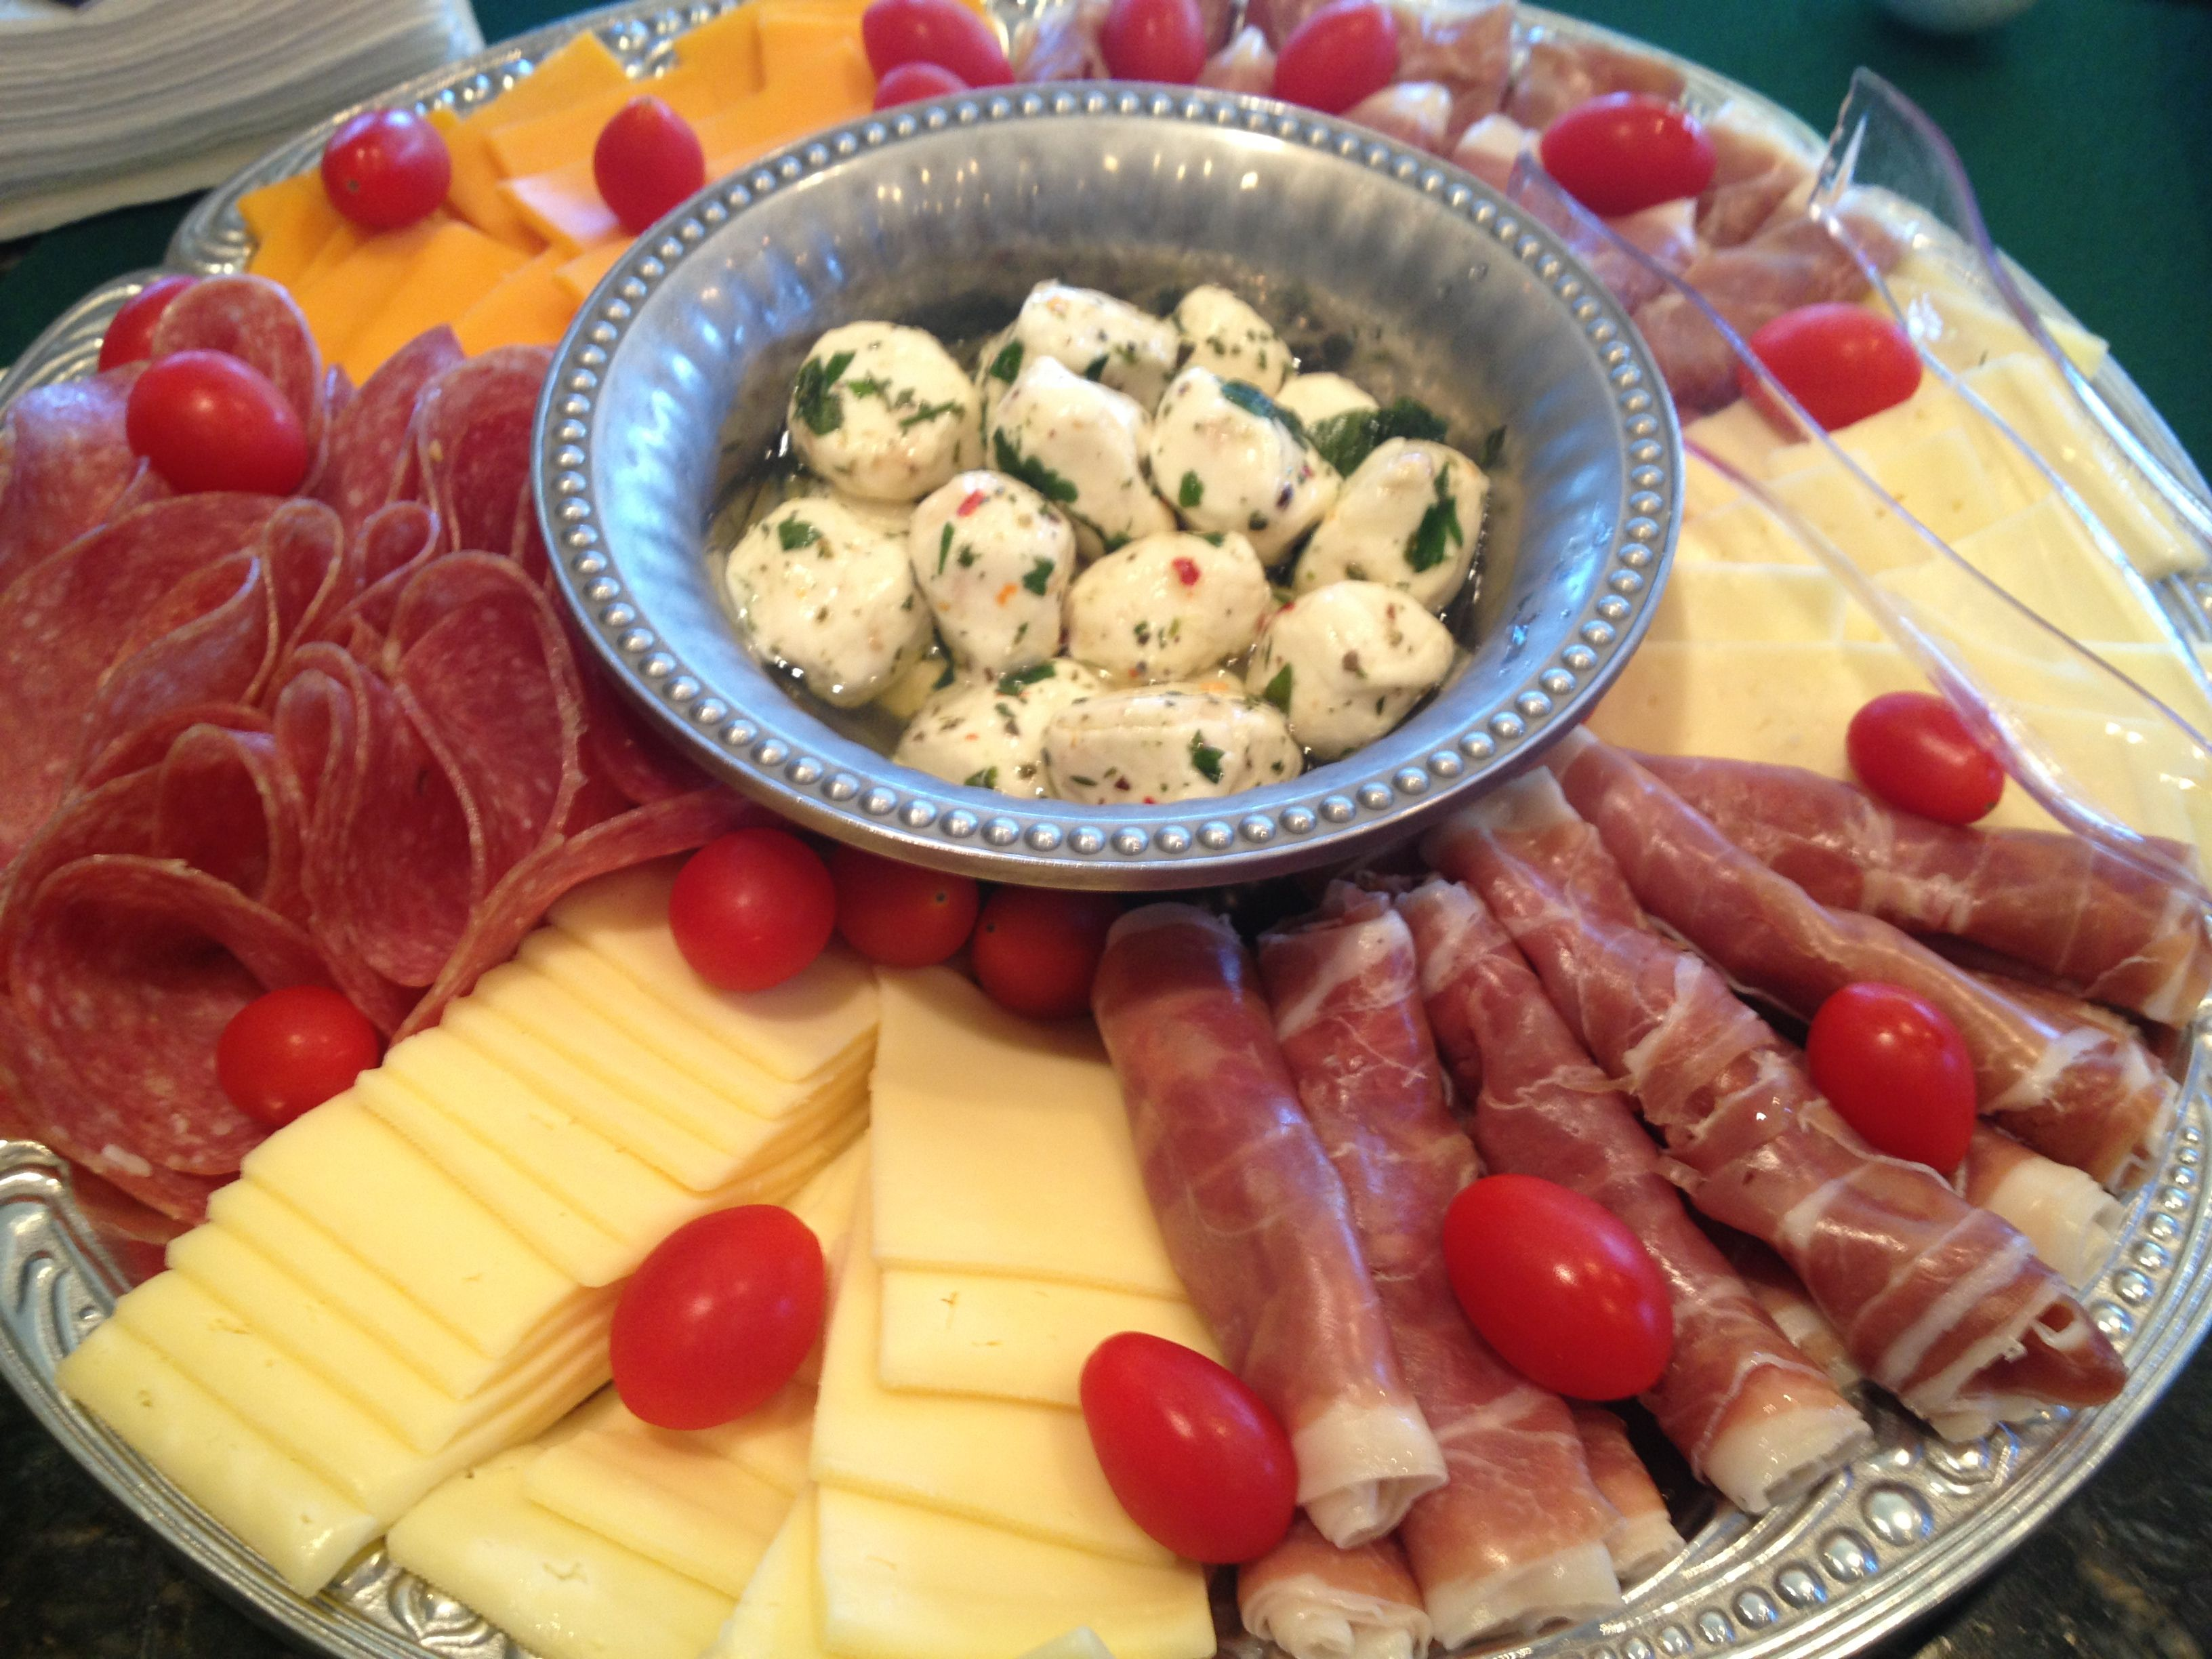 Easy Meat \u0026 Cheese platter! Brought everything at Costco and assembled! Pre-sliced cheese (4 diff kinds) prosciutto salami cherry tomatoes for color. & Easy Meat \u0026 Cheese platter! Brought everything at Costco and ...